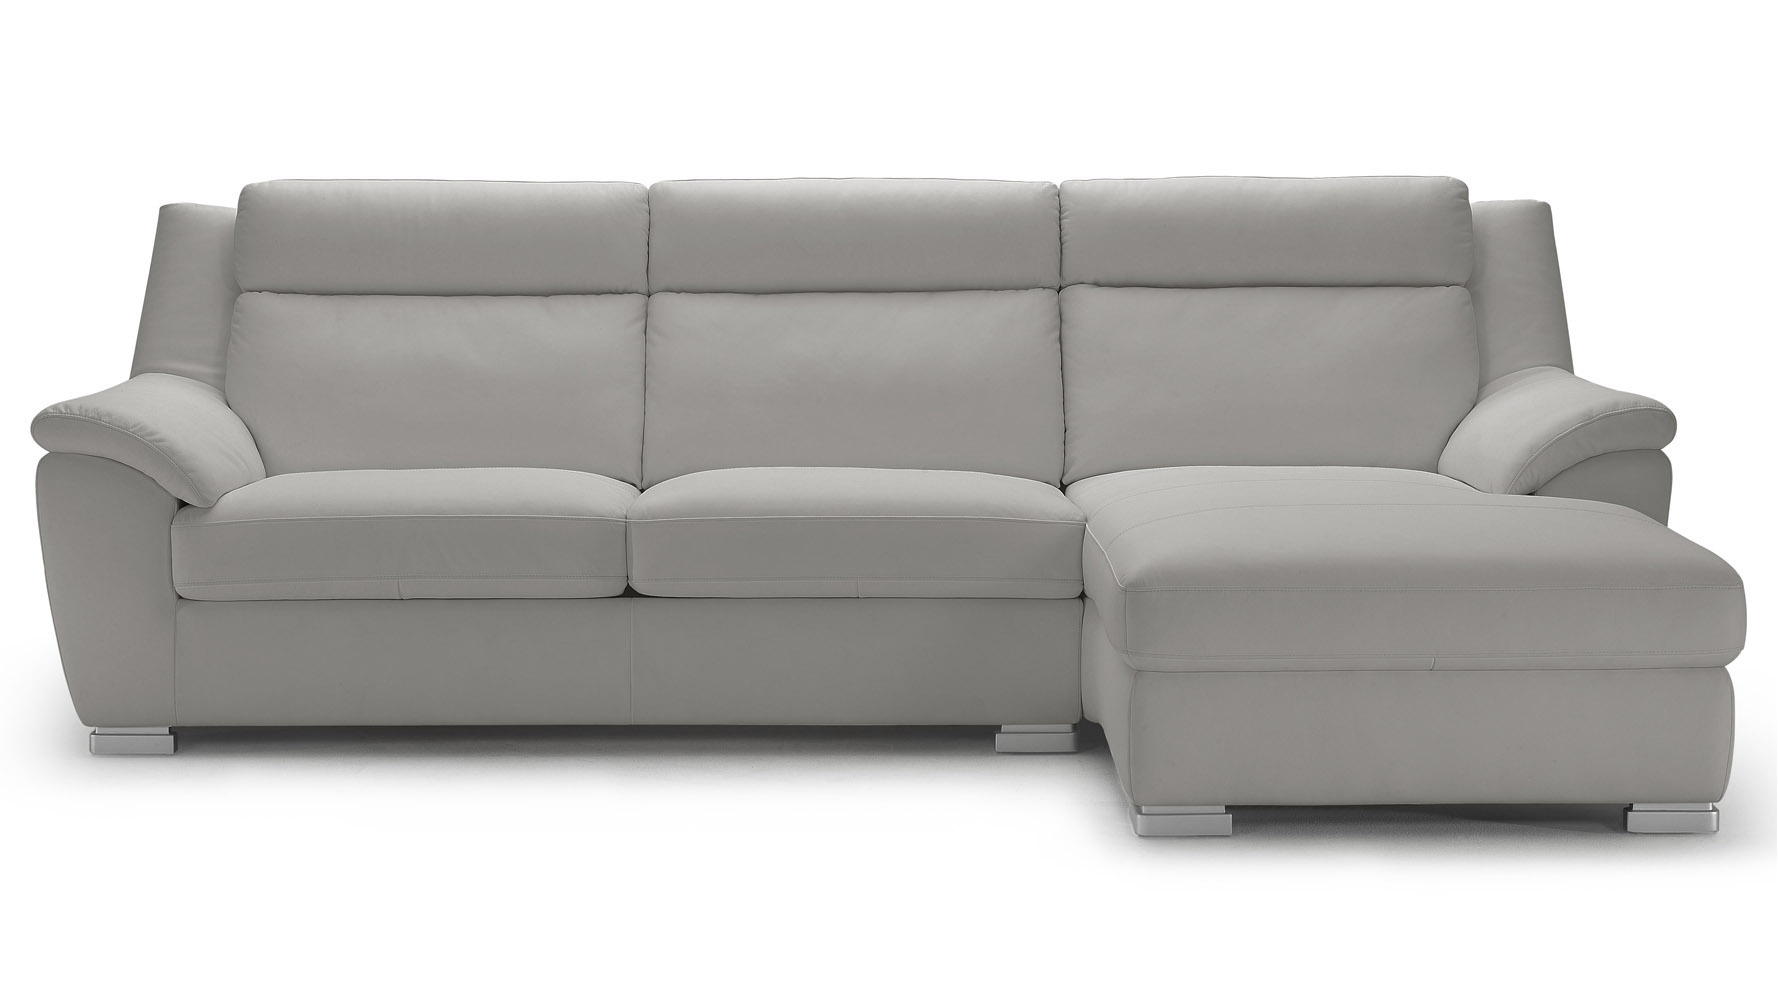 Leather Sectional Sleeper Sofa Chaise